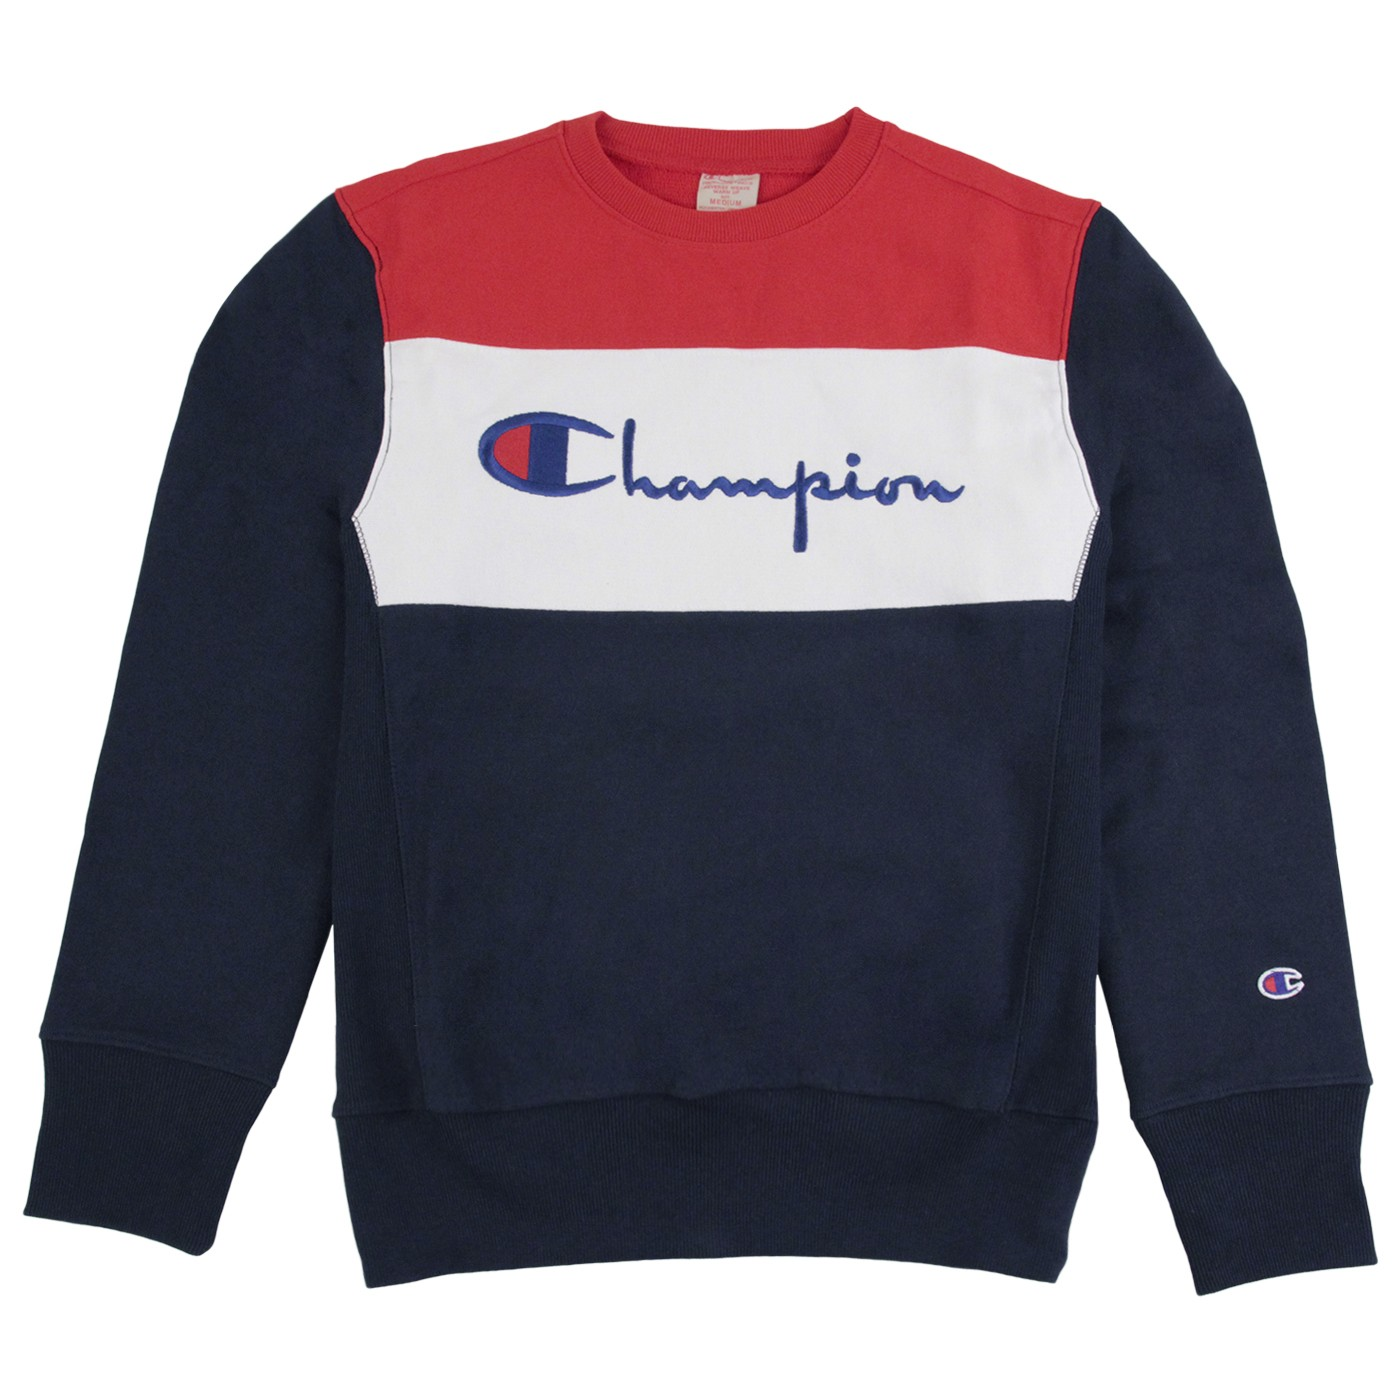 Panel Crew Neck Sweatshirt in Navy / White / Red by Champion